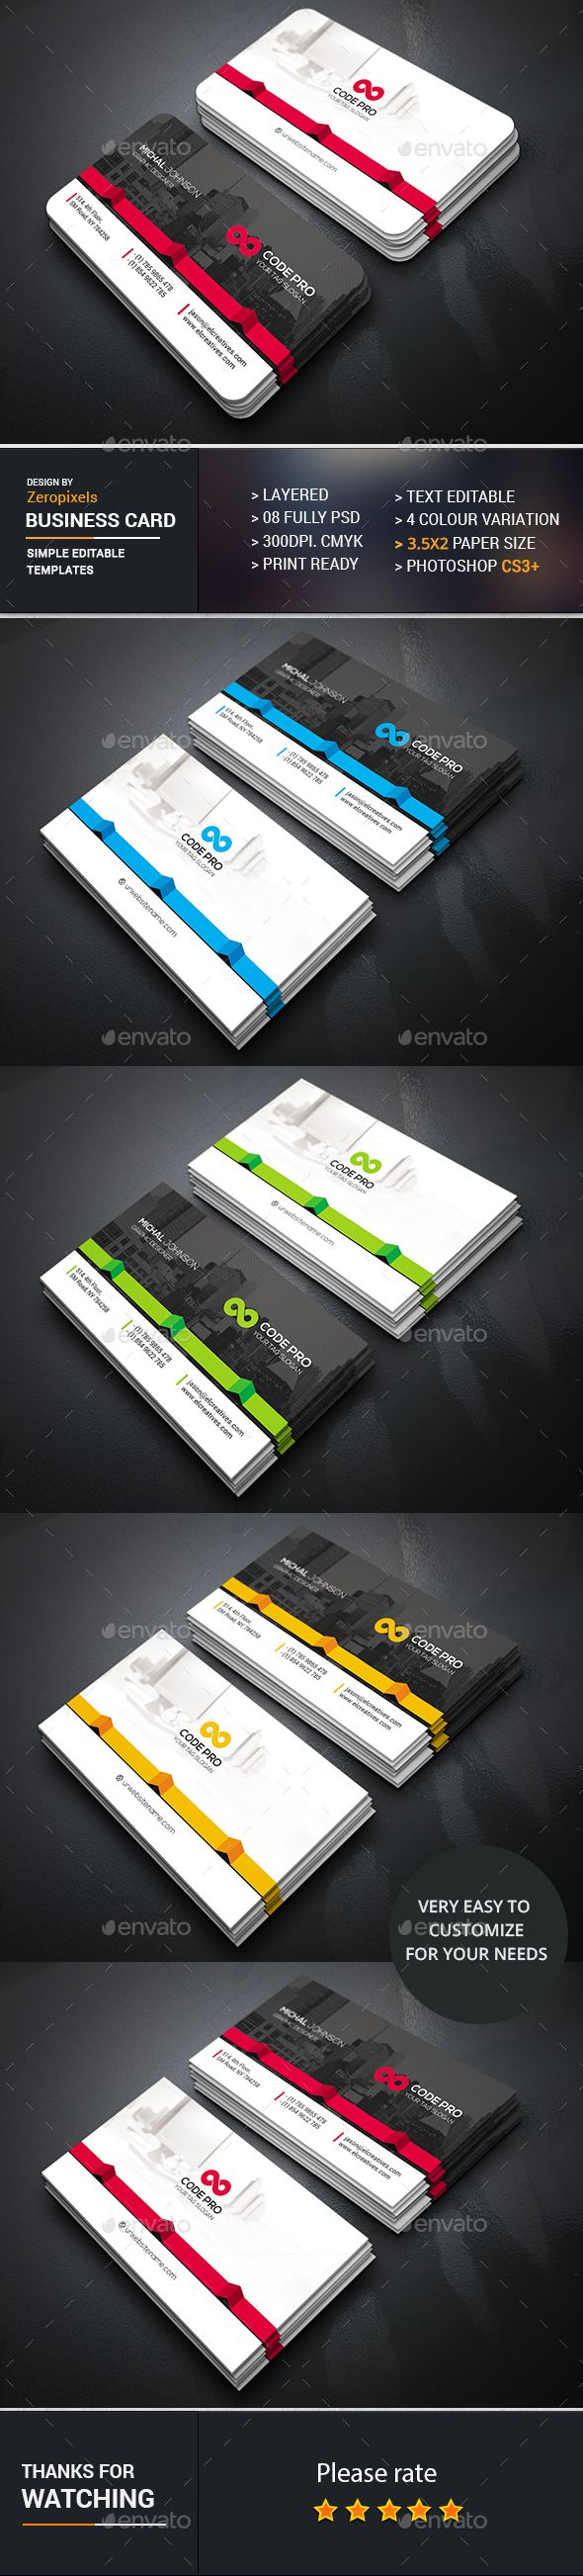 Etiquette tips on business cards pinterest business cards card soft business card template psd download here httpsgraphicriveritemsoft business card17336315refksioks reheart Images